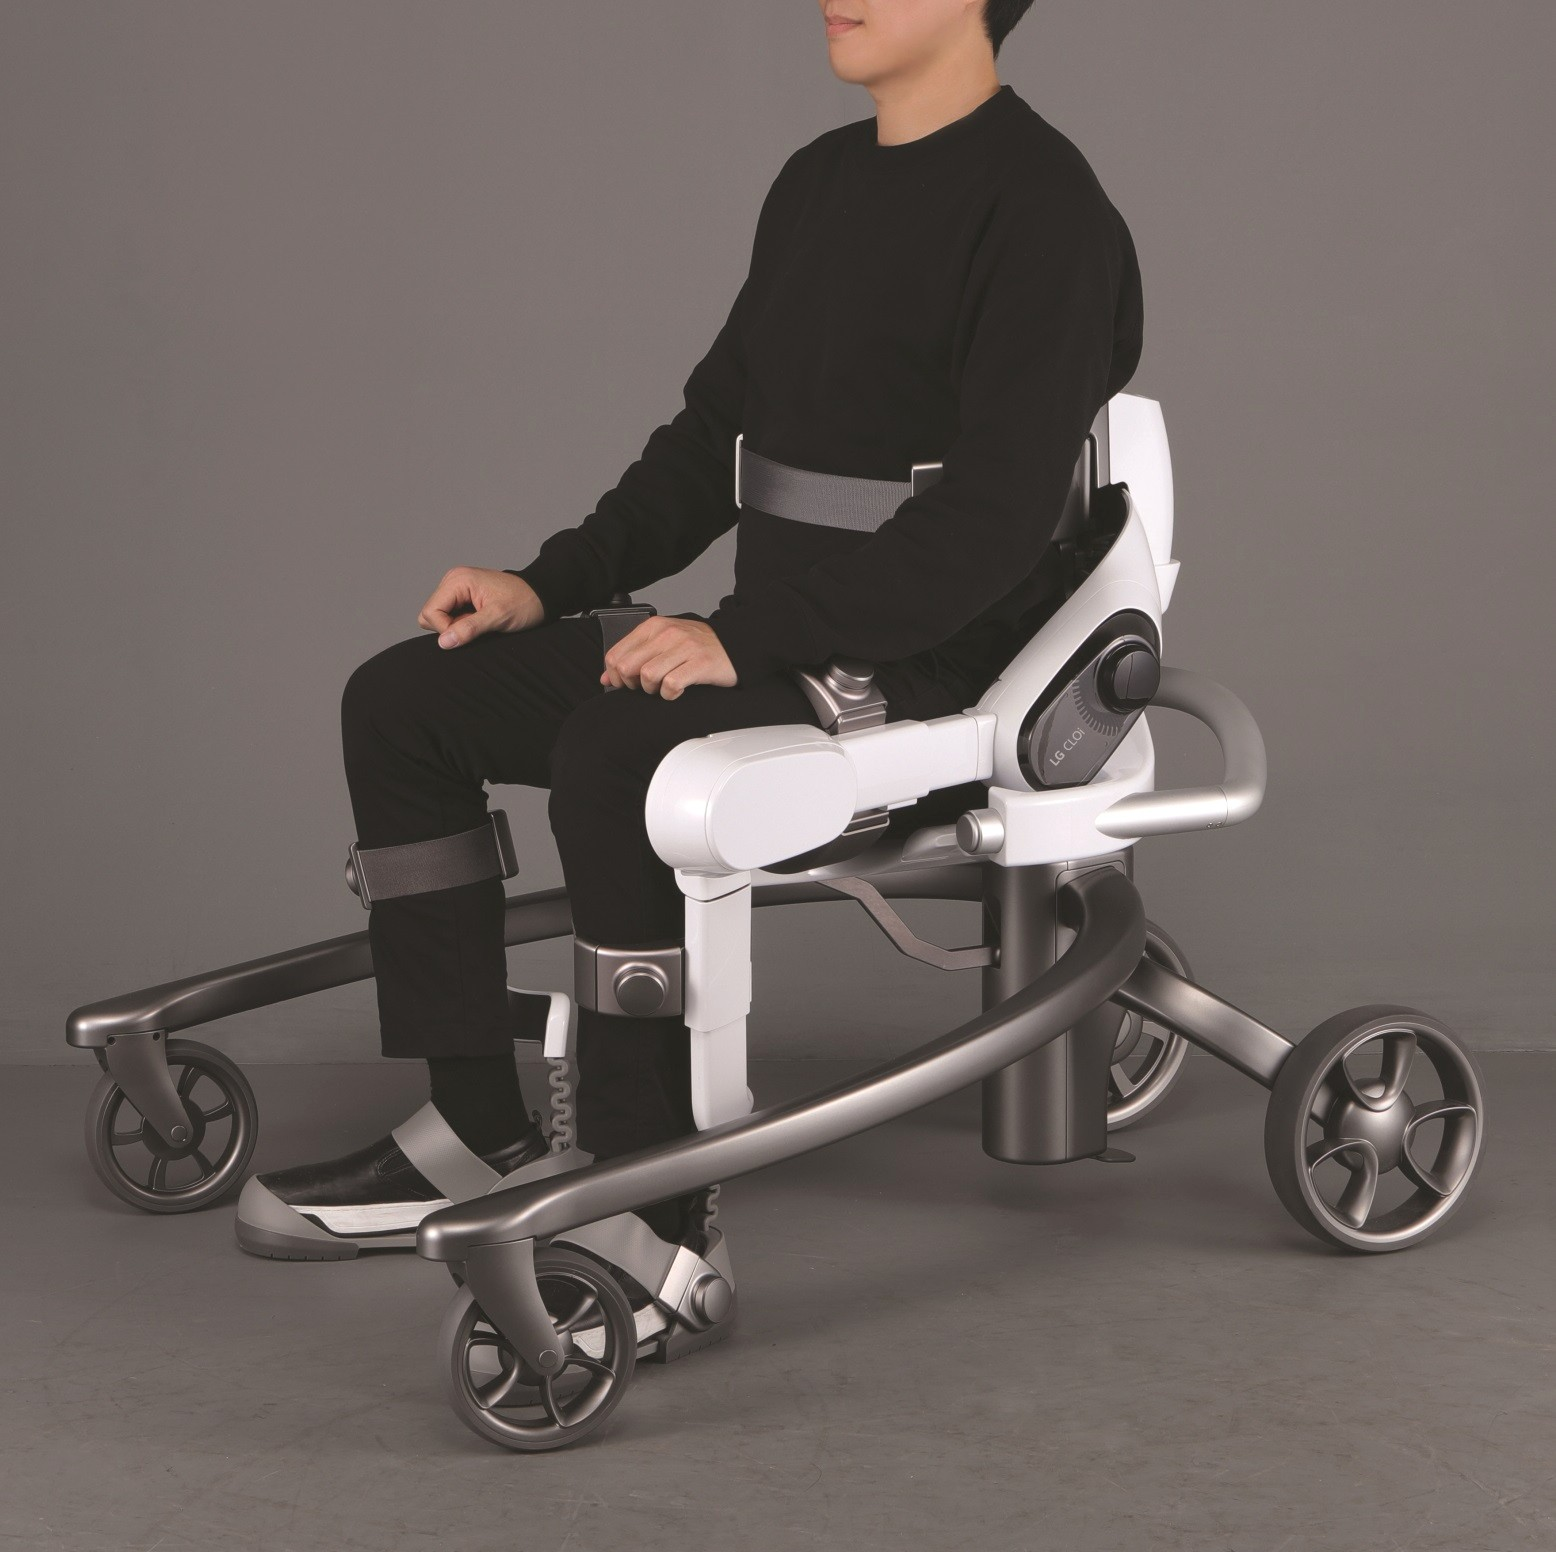 Side view of man seated on LG CLOi SuitBot